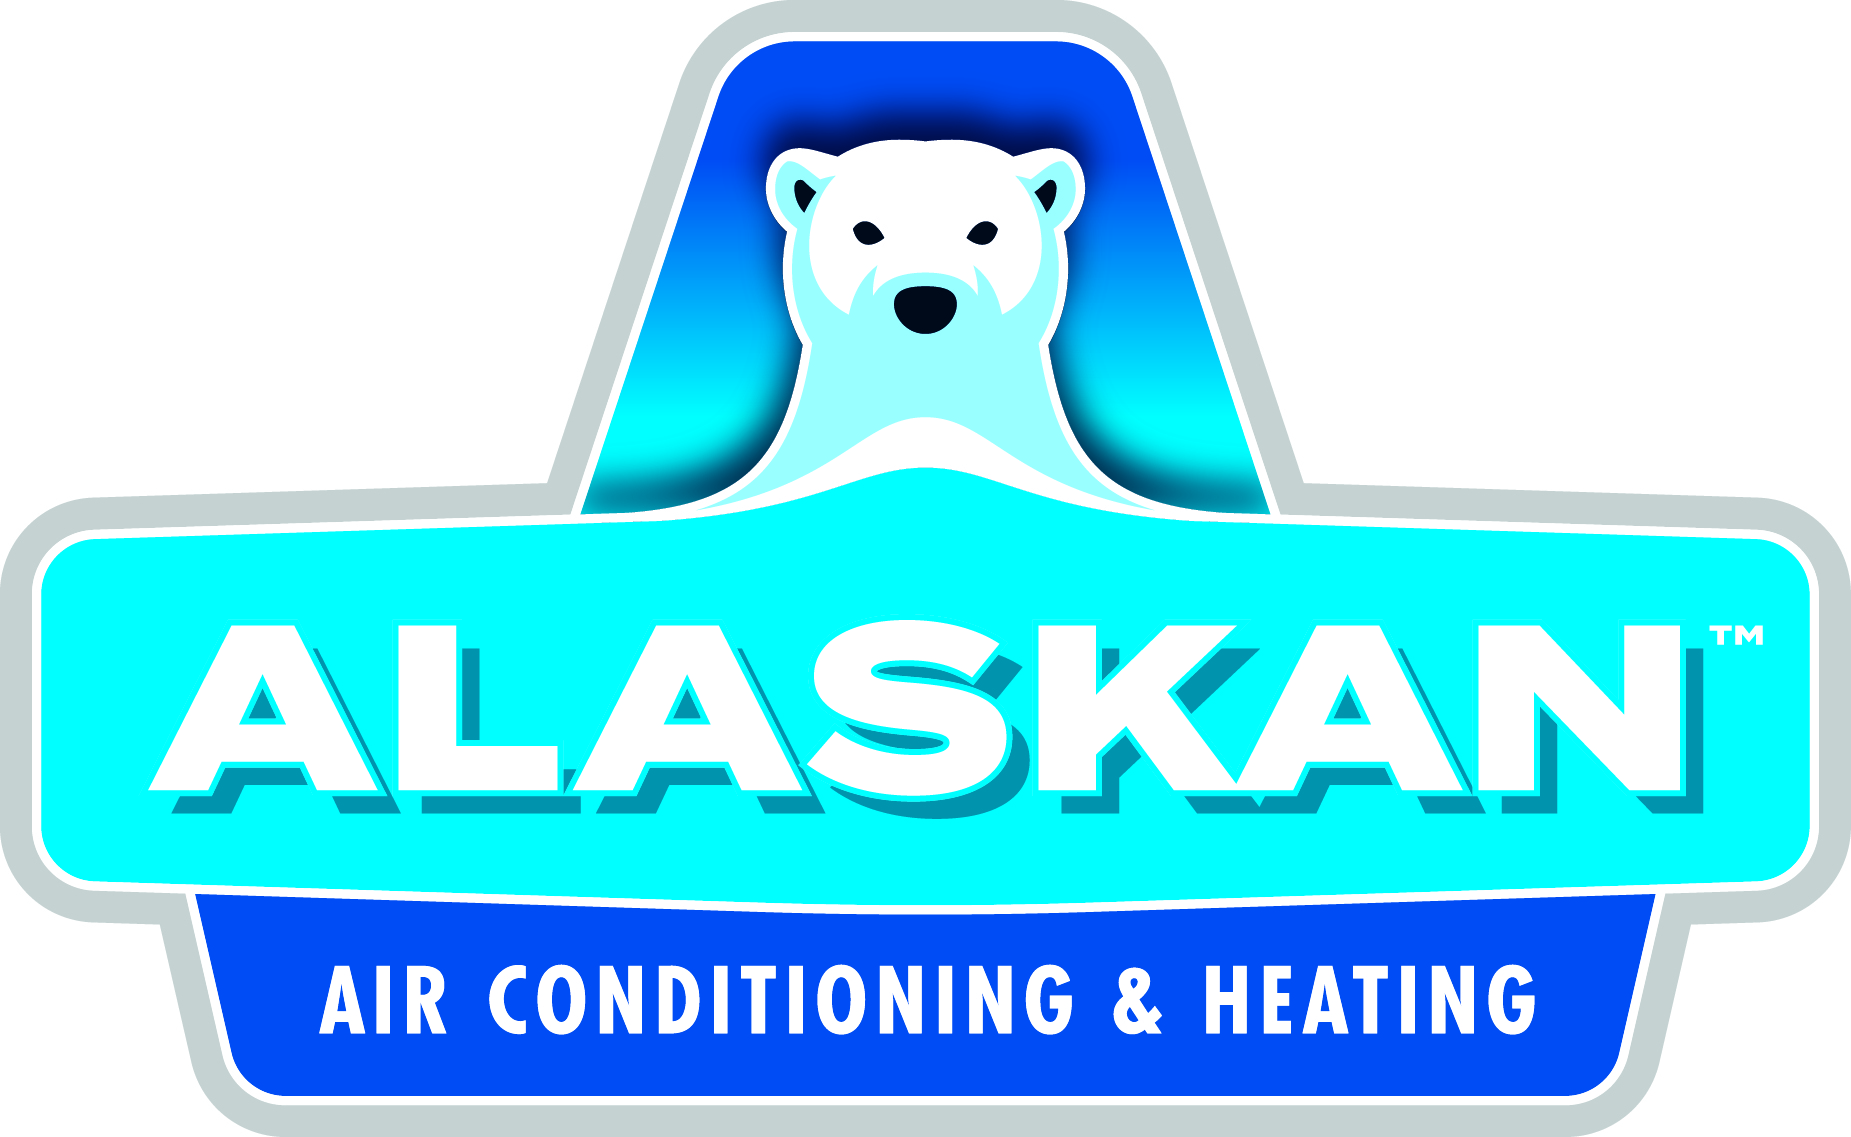 Alaskan Air Conditioning & Heating